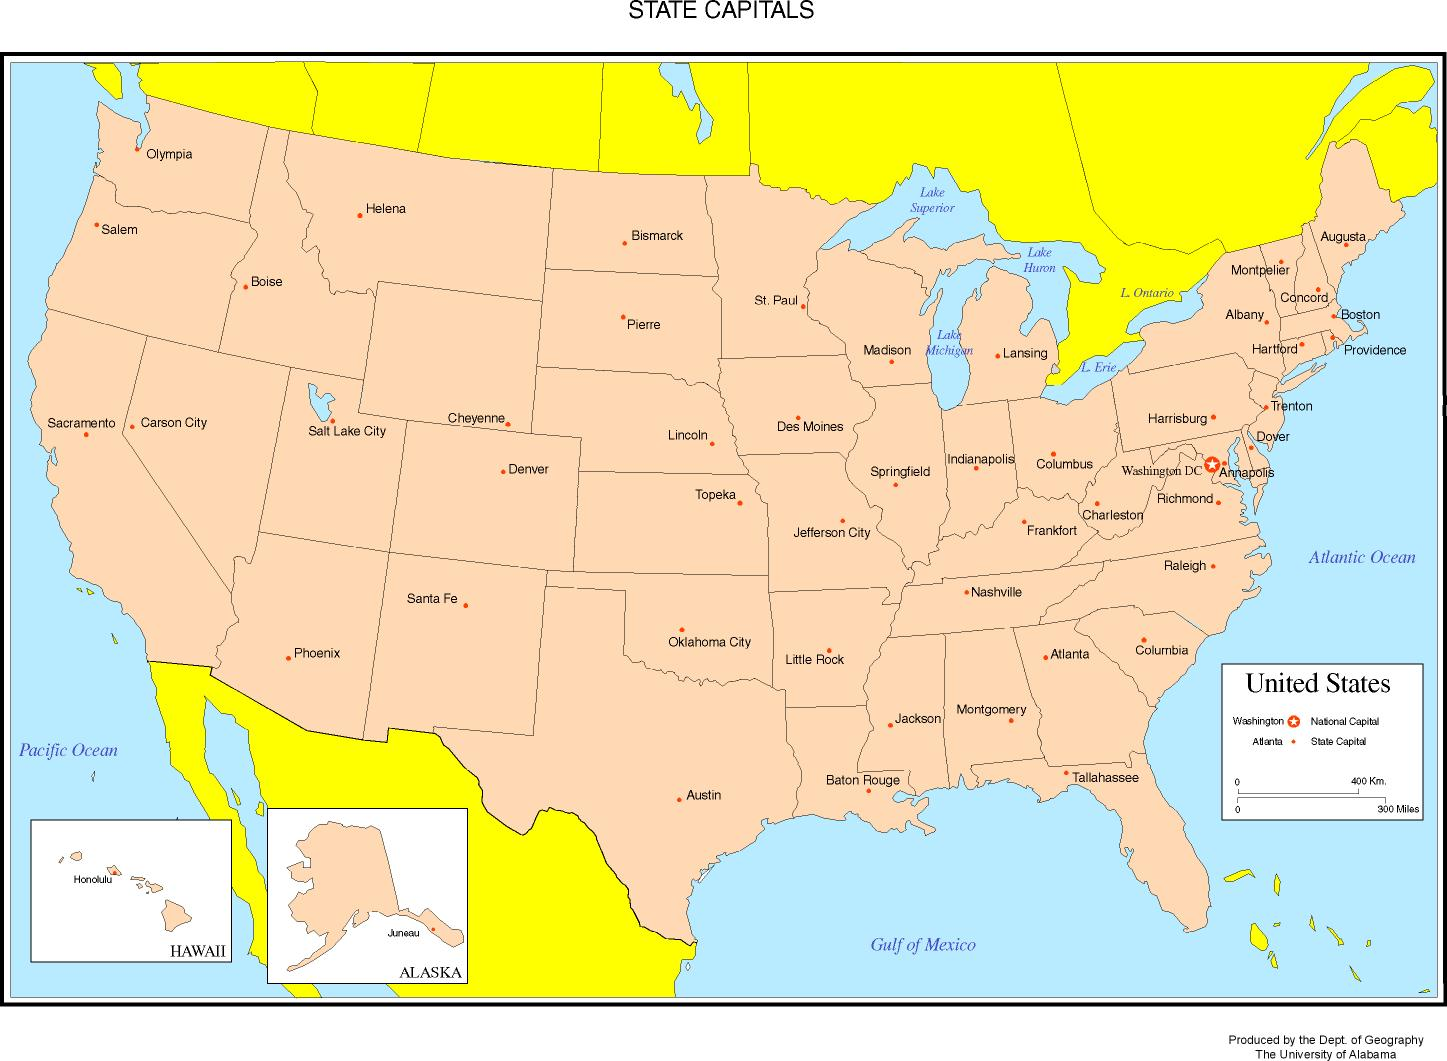 Maps Of The United States - Usa maps of states